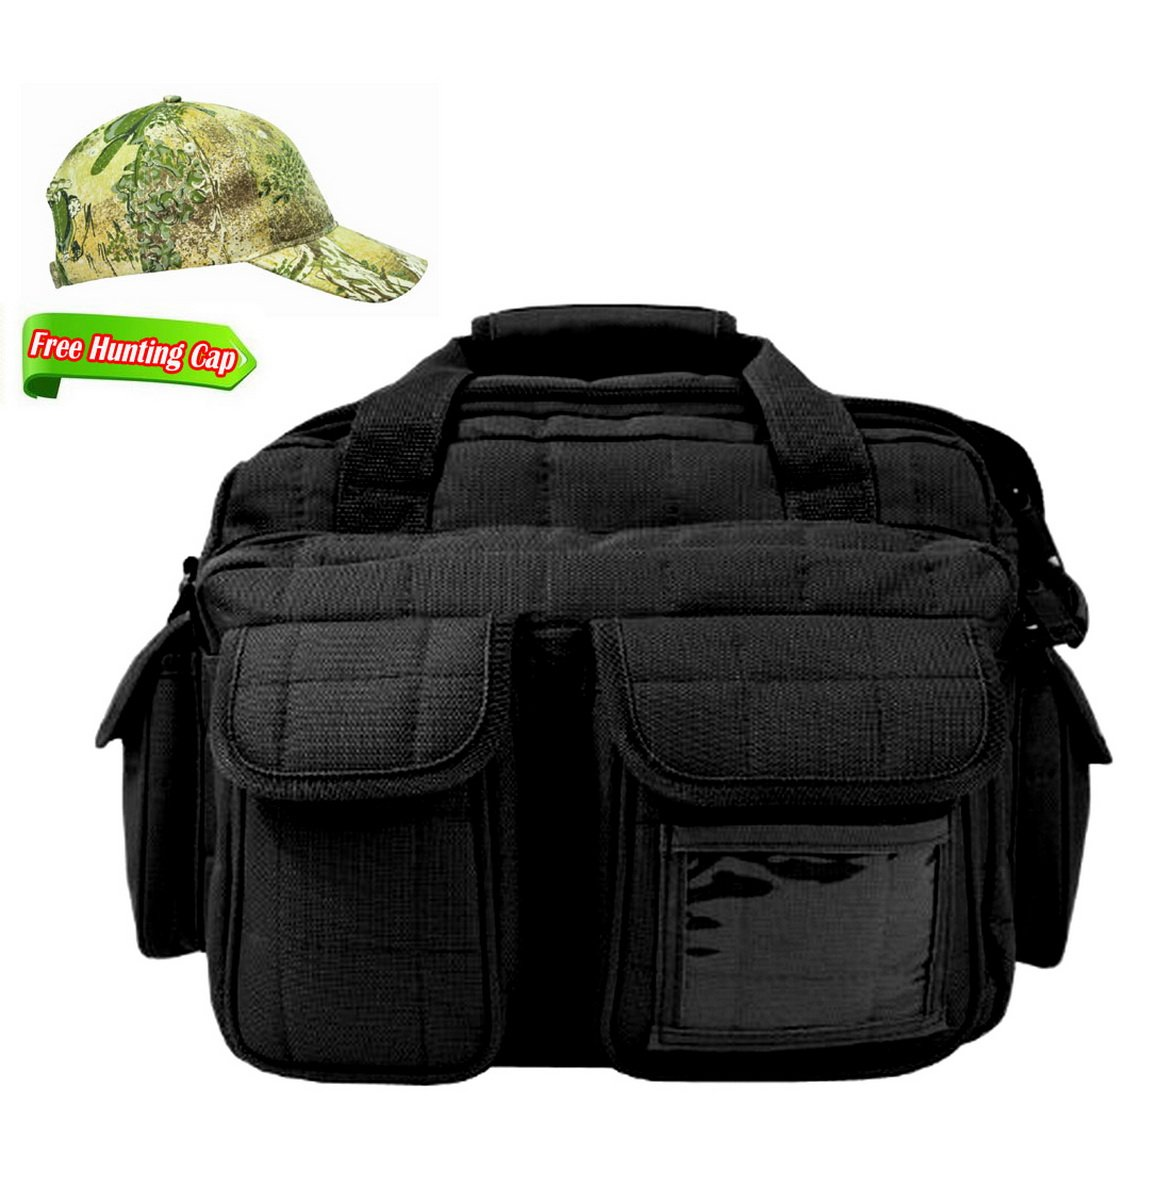 8. R1 BK, TAN, OD, ACU MOSSY OAK Padded Quilted Deluxe Tactical Range and Gear Bag – Rangemaster holding 12 guns Gear Bag